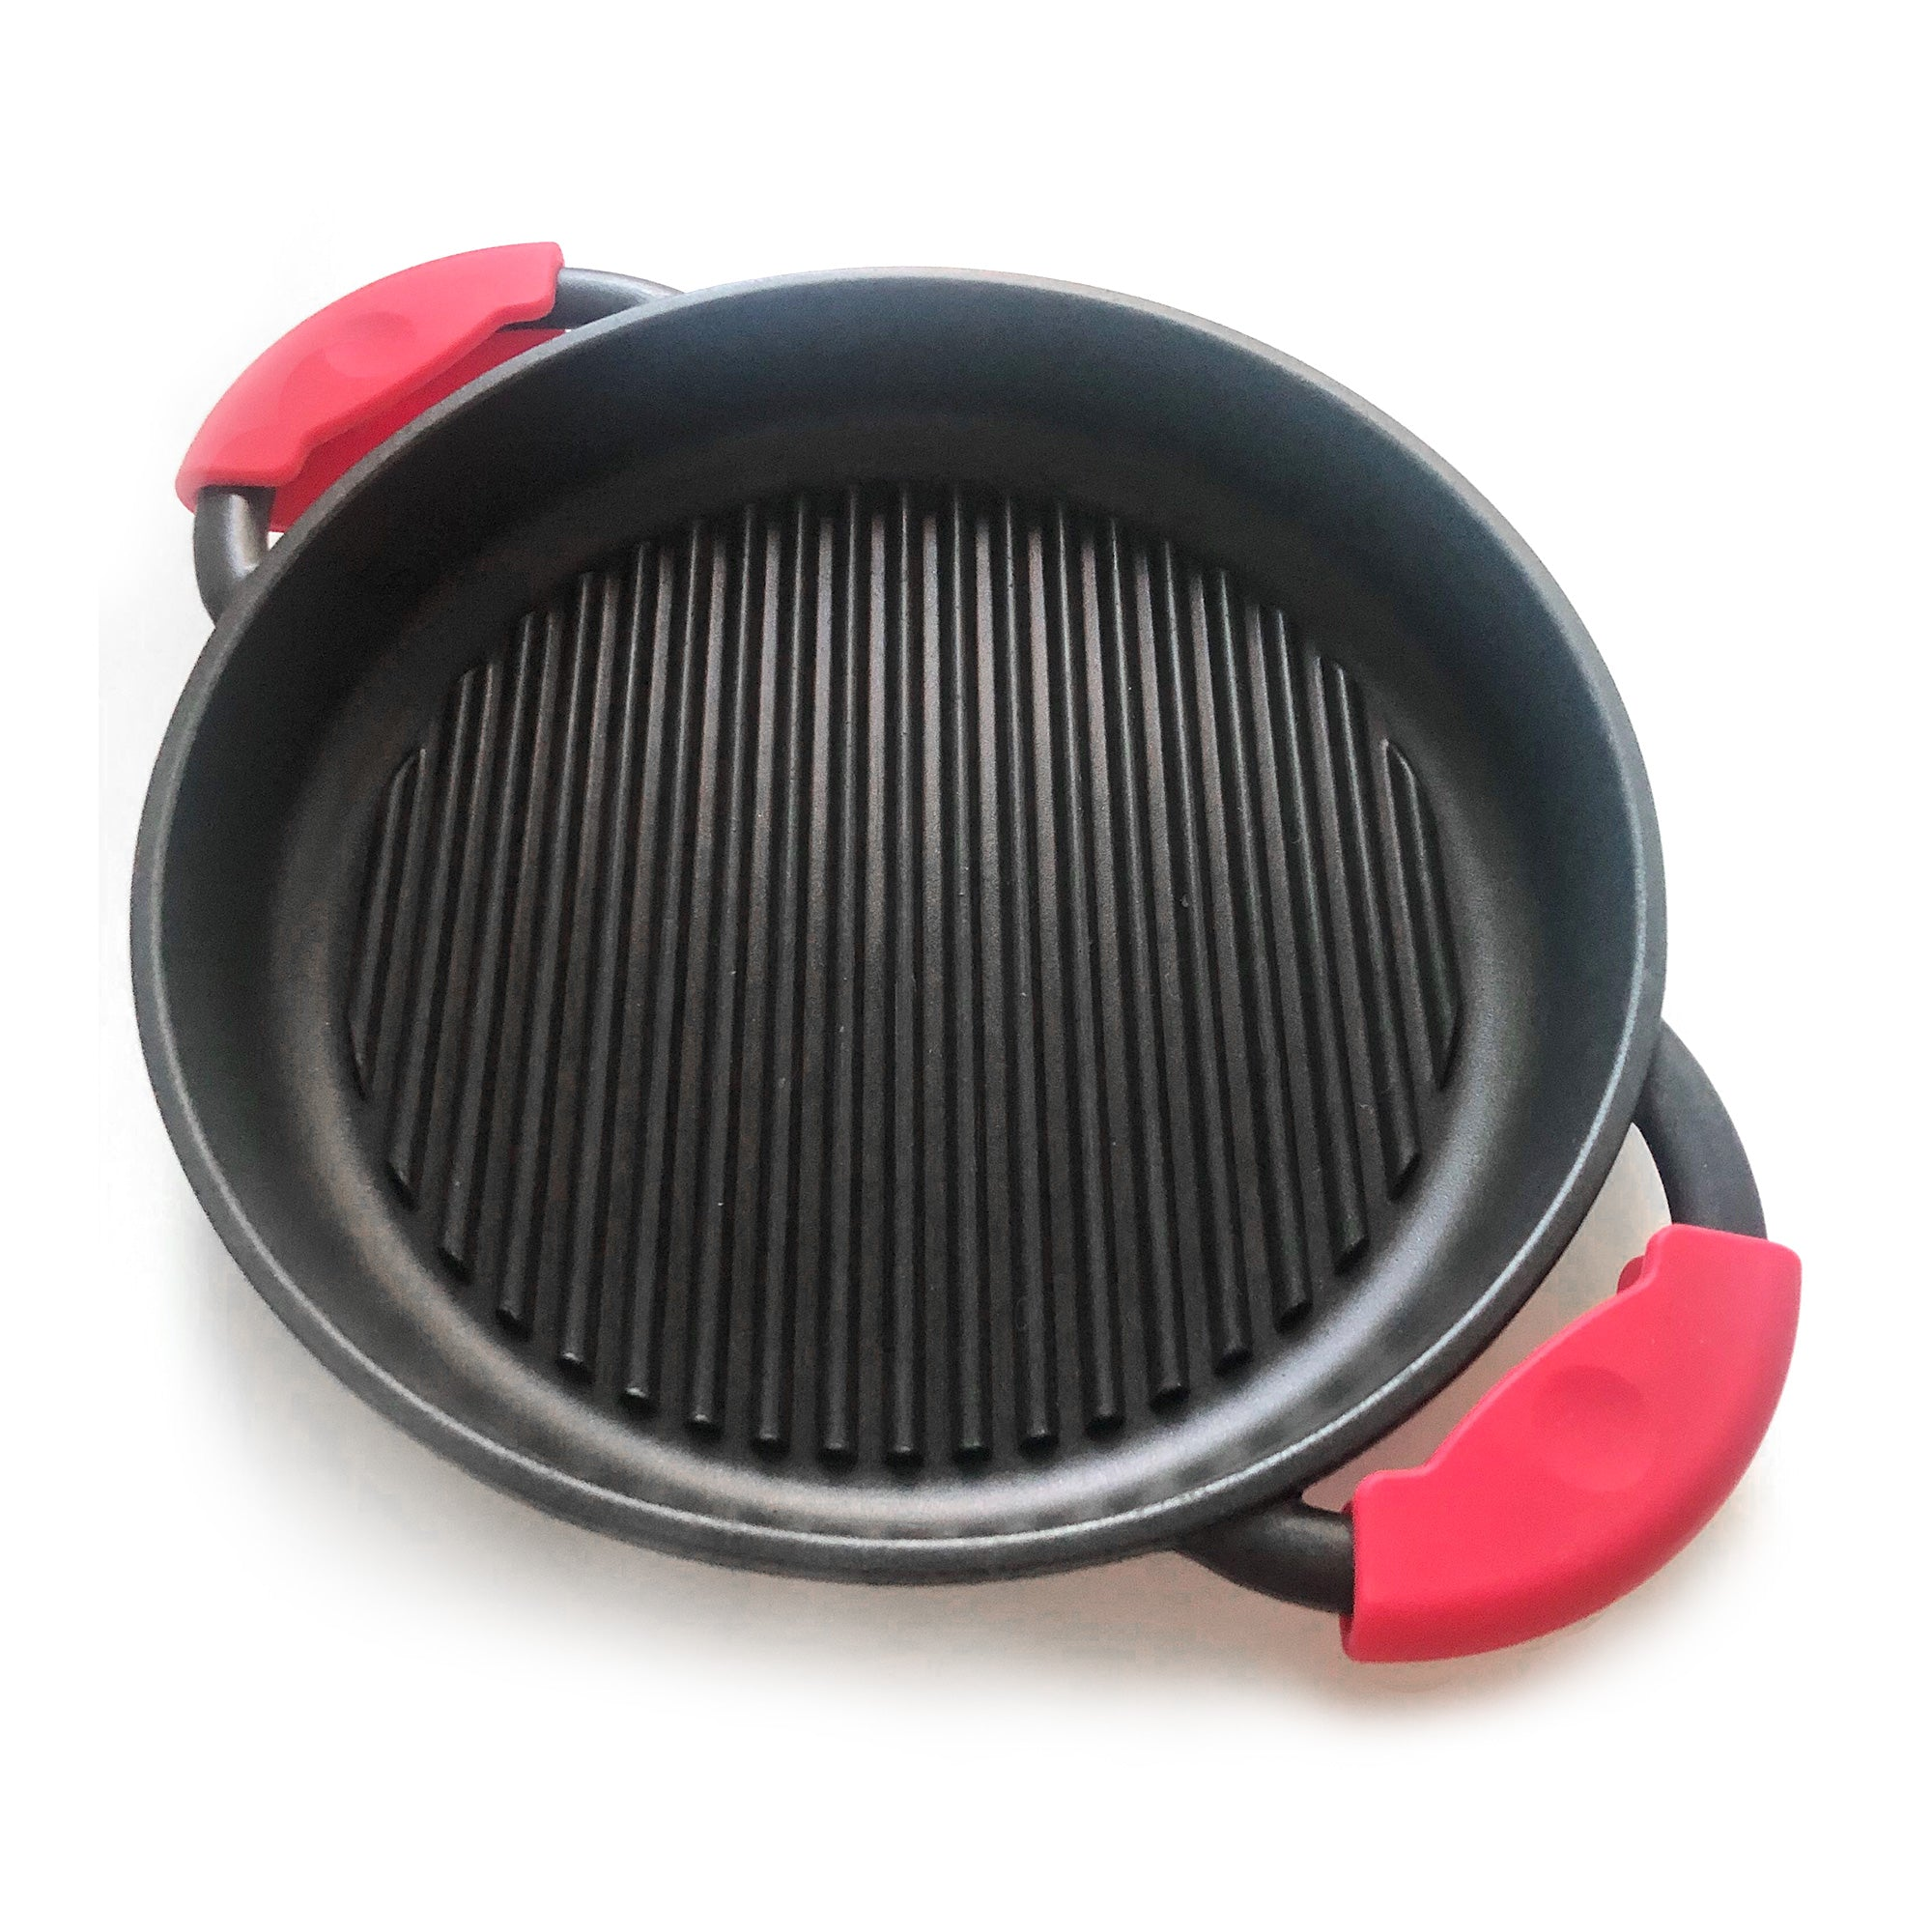 Silicone Handles for The Whatever Pan